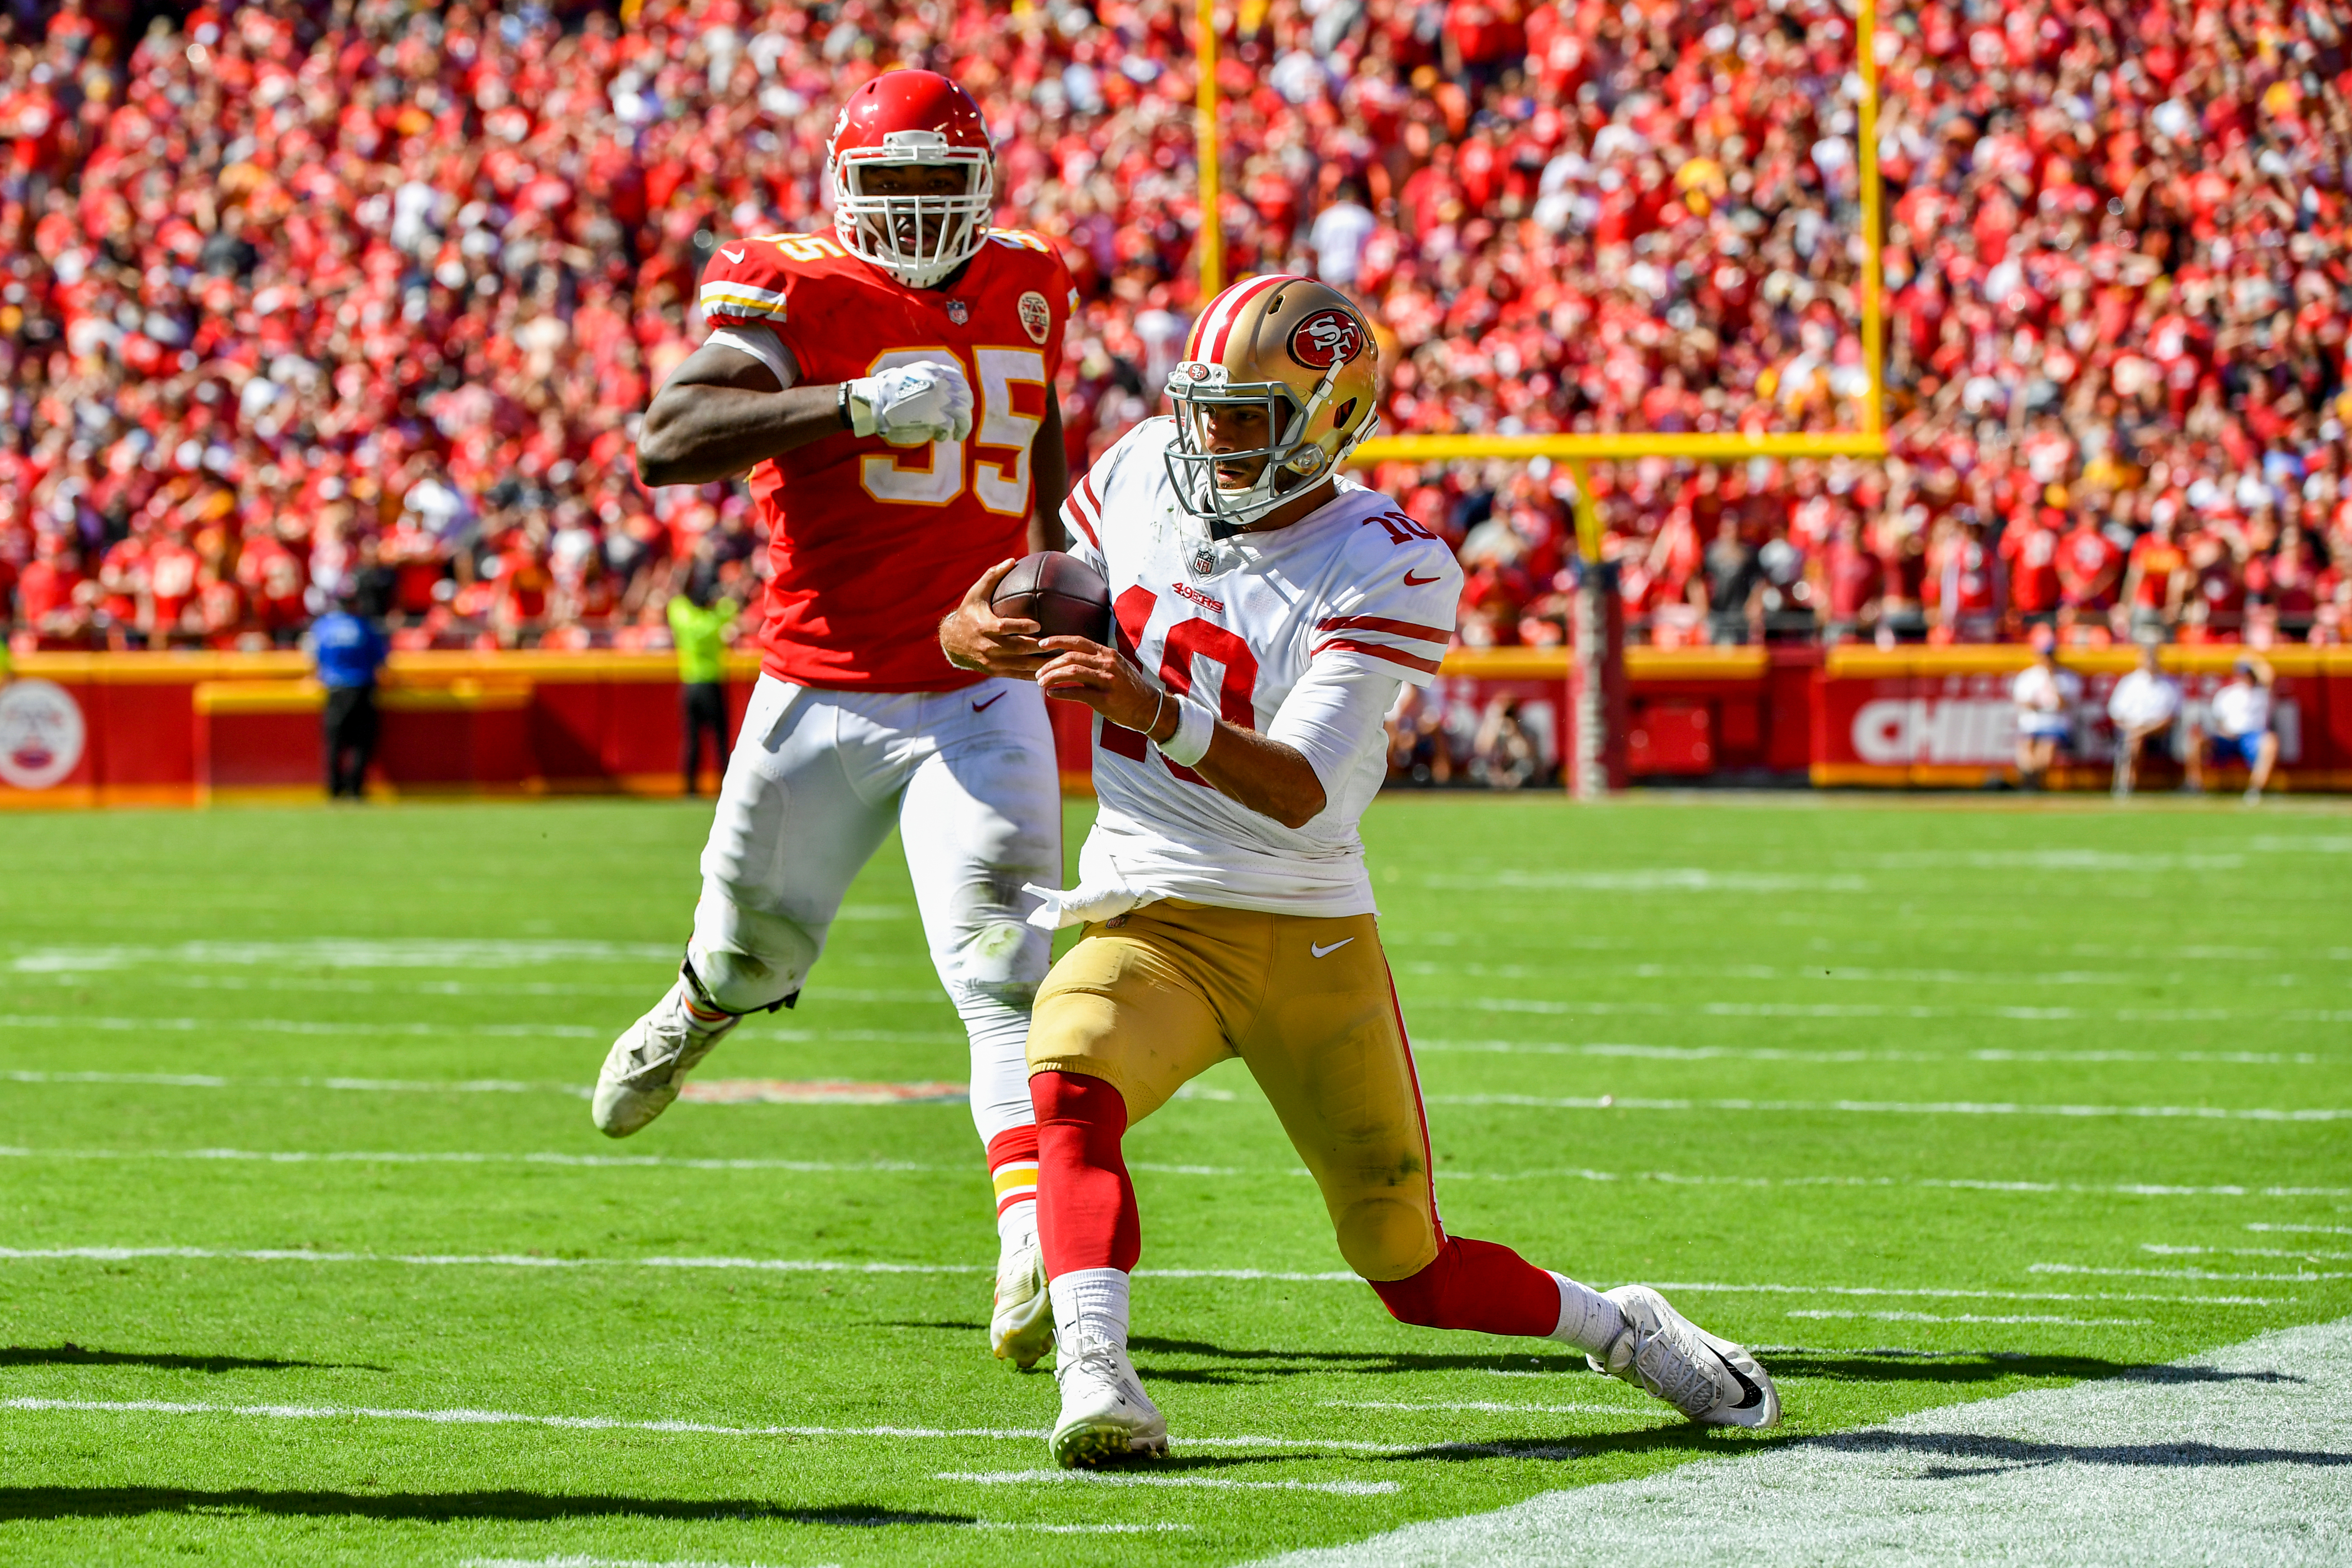 a92e12c2a 49ers-Chiefs recap  Top highlights (and lowlights) from San Francisco s  brutal loss in Kansas City - Niners Nation